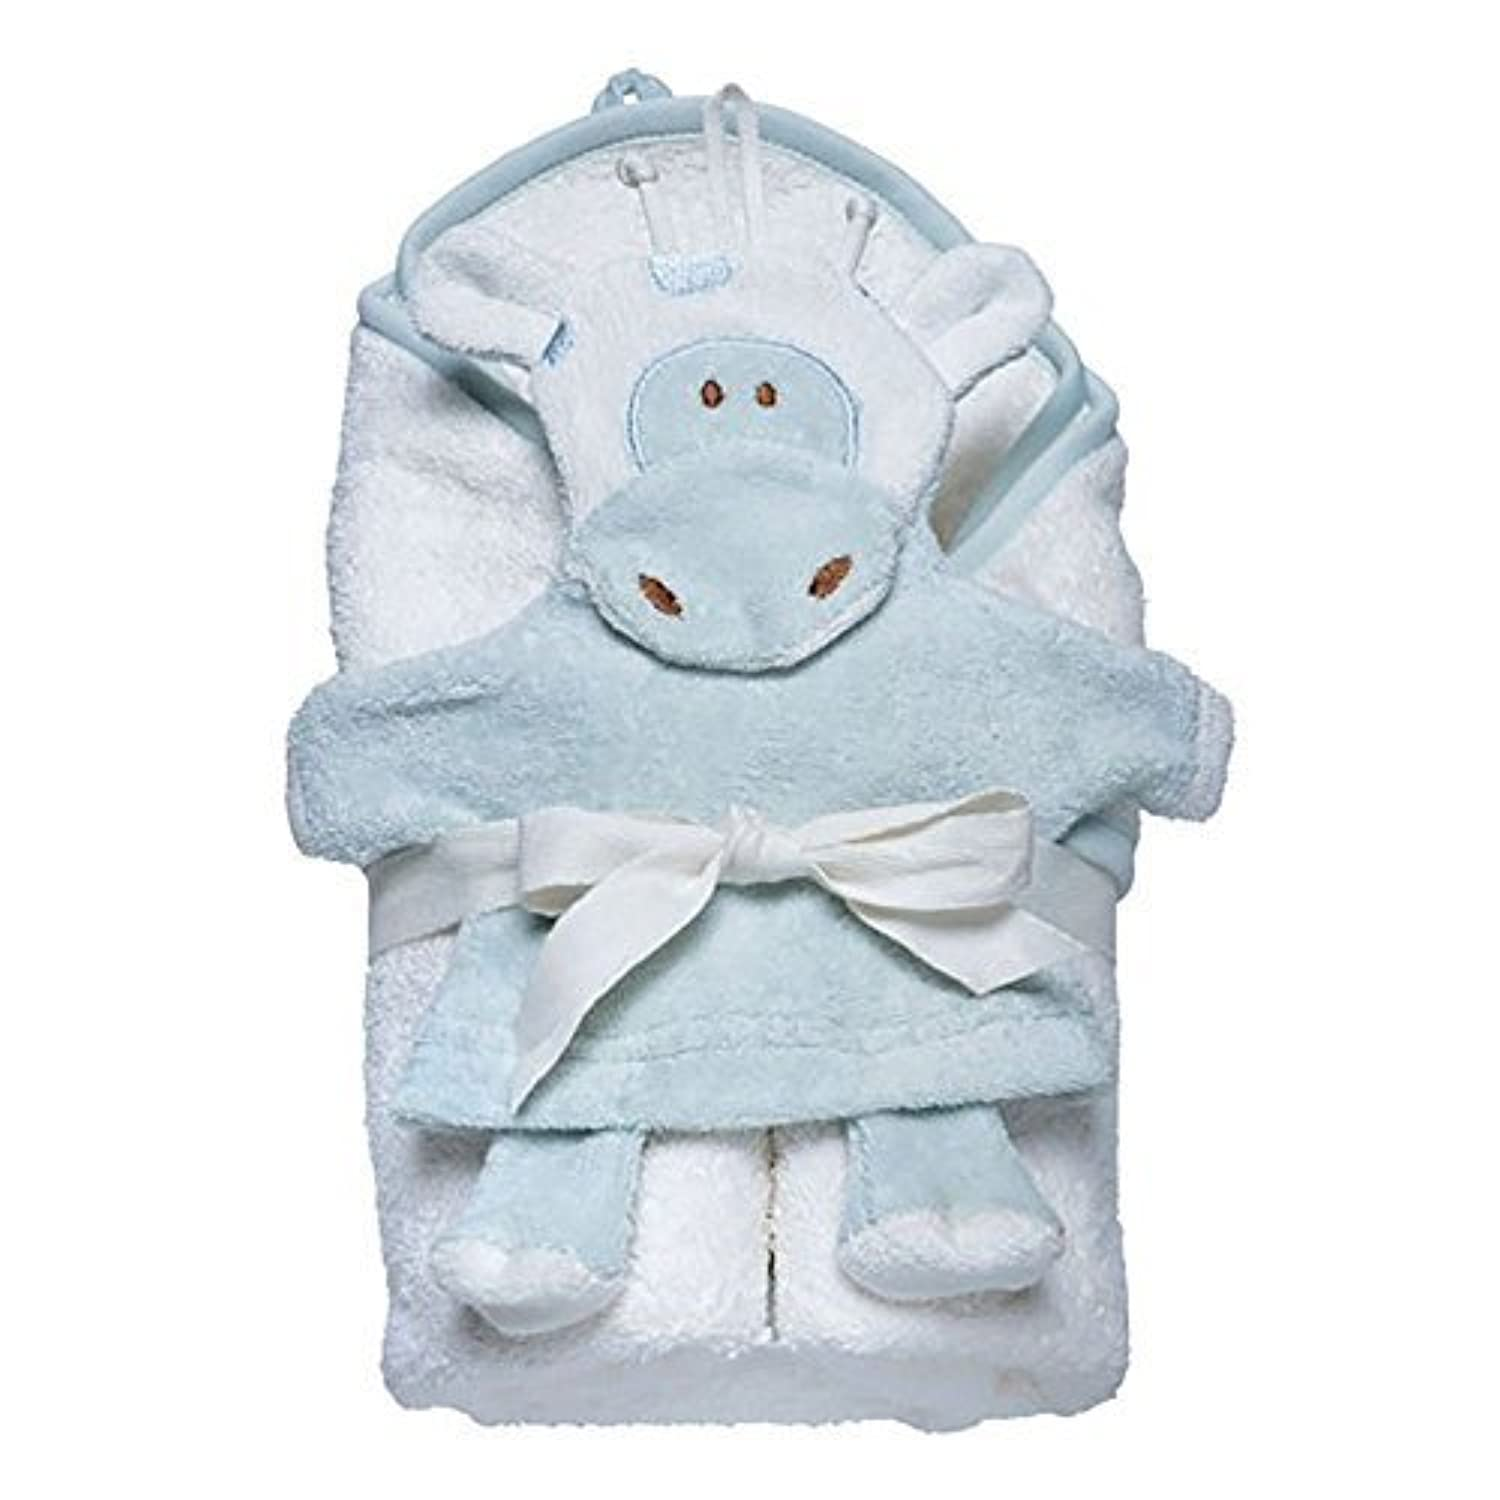 Under the Nile Hooded Towel and Wash Mitt Set - Giraffe by Under the Nile [並行輸入品]